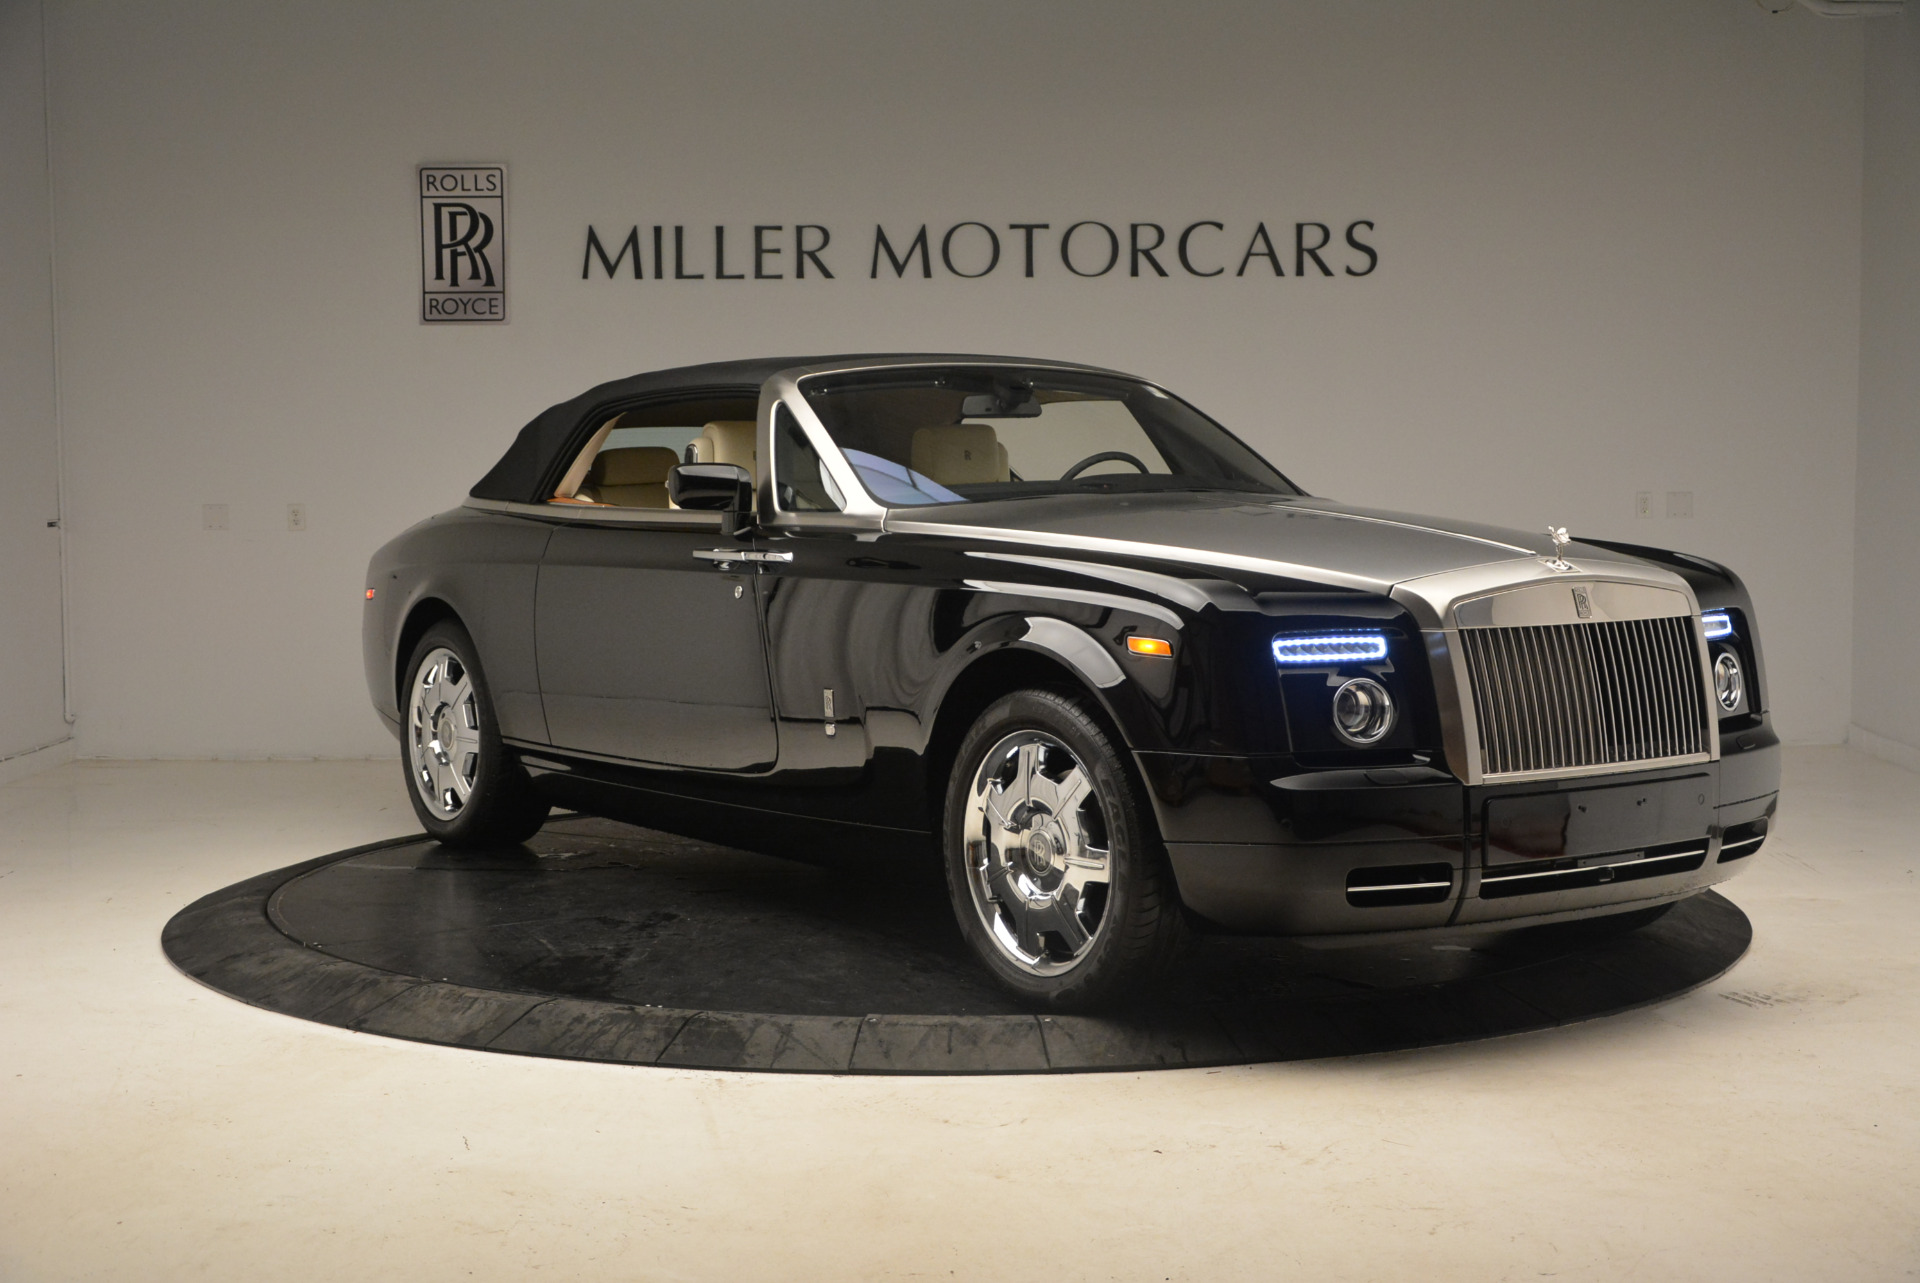 Used 2009 Rolls-Royce Phantom Drophead Coupe  For Sale In Greenwich, CT 1792_p23